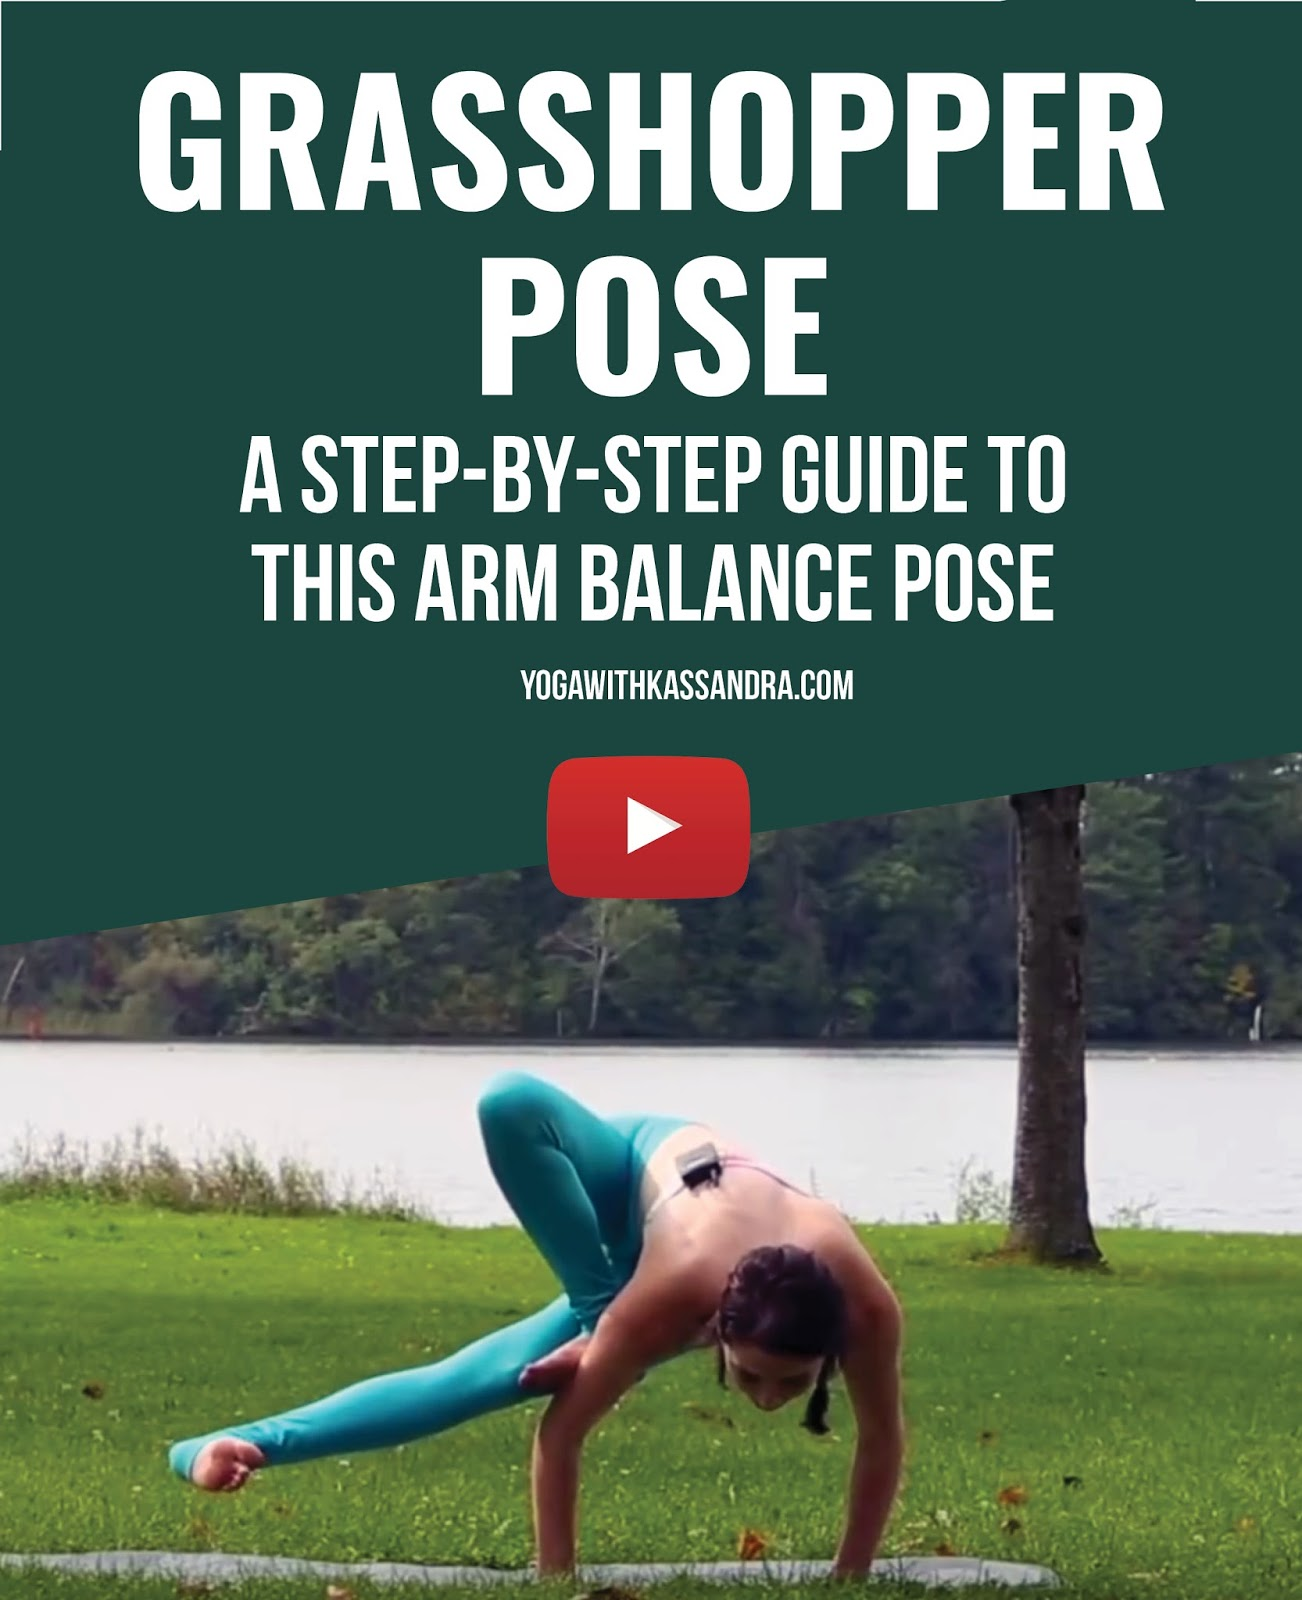 Get Into Grasshopper Pose (a Step-By-Step Tutorial) - Yoga with